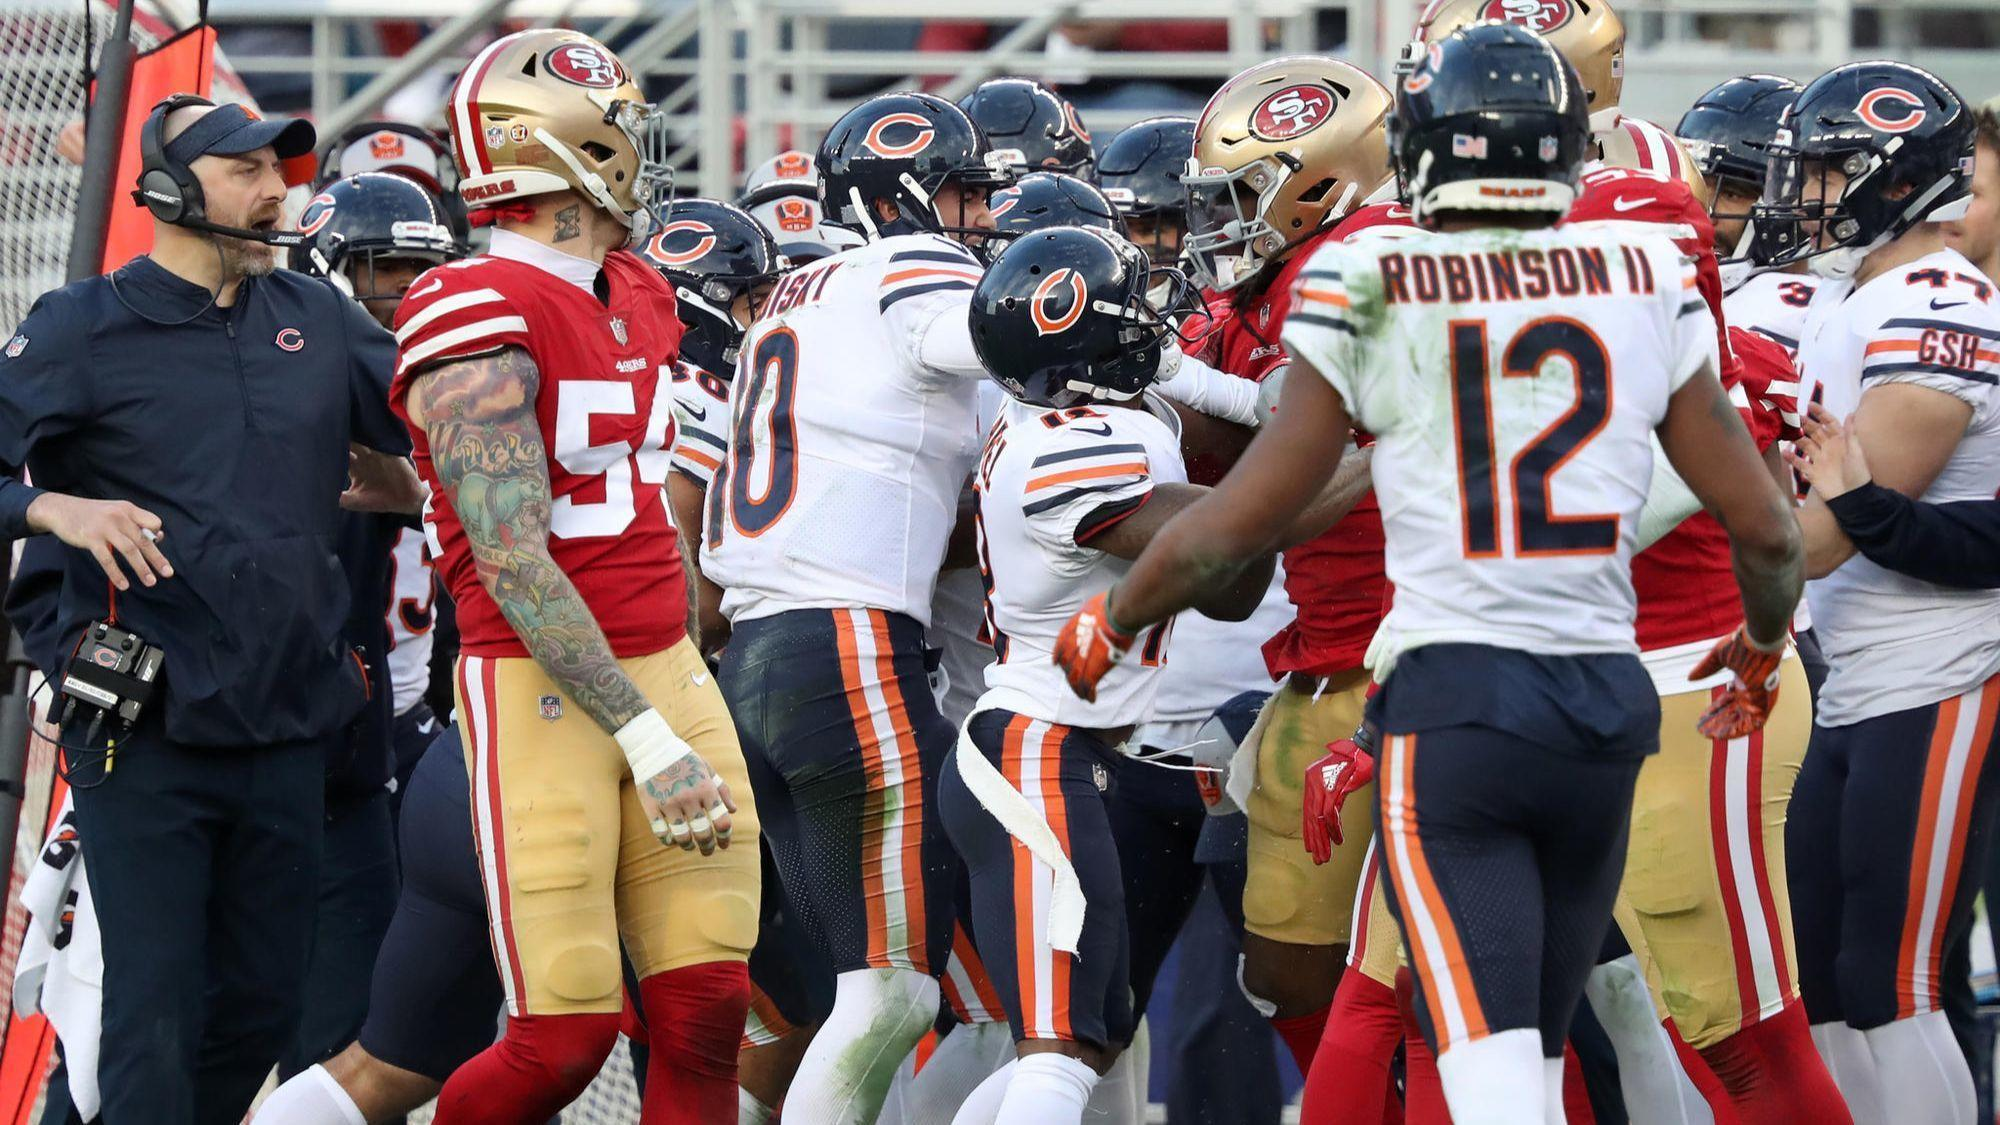 Anthony Miller and the Bears explain why a late hit started fight with 49ers  - Chicago Tribune 196ade522